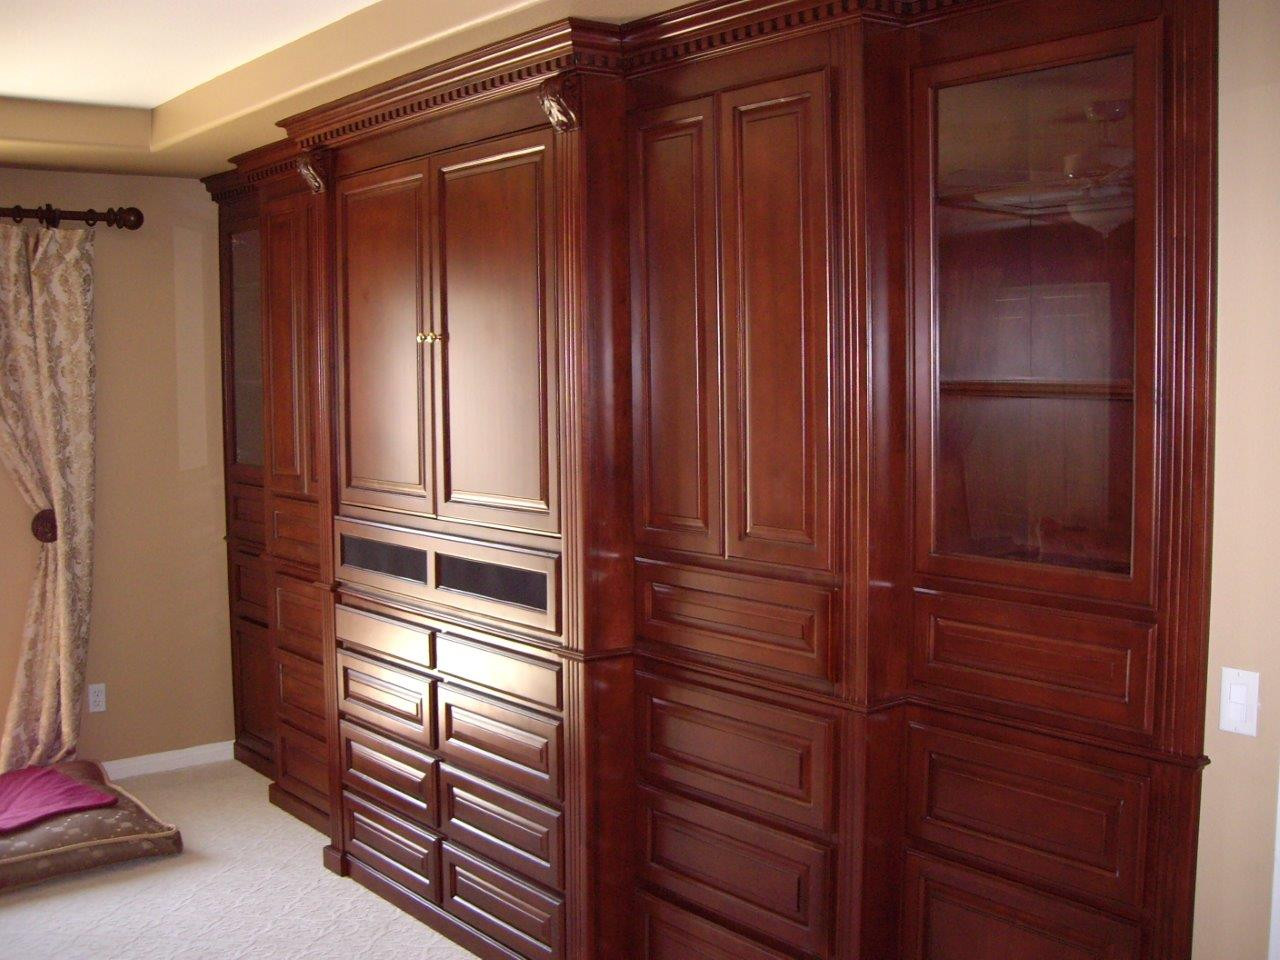 Bedroom Wall Storage Cabinets  Murphy Beds and Bedroom Cabinets Woodwork Creations